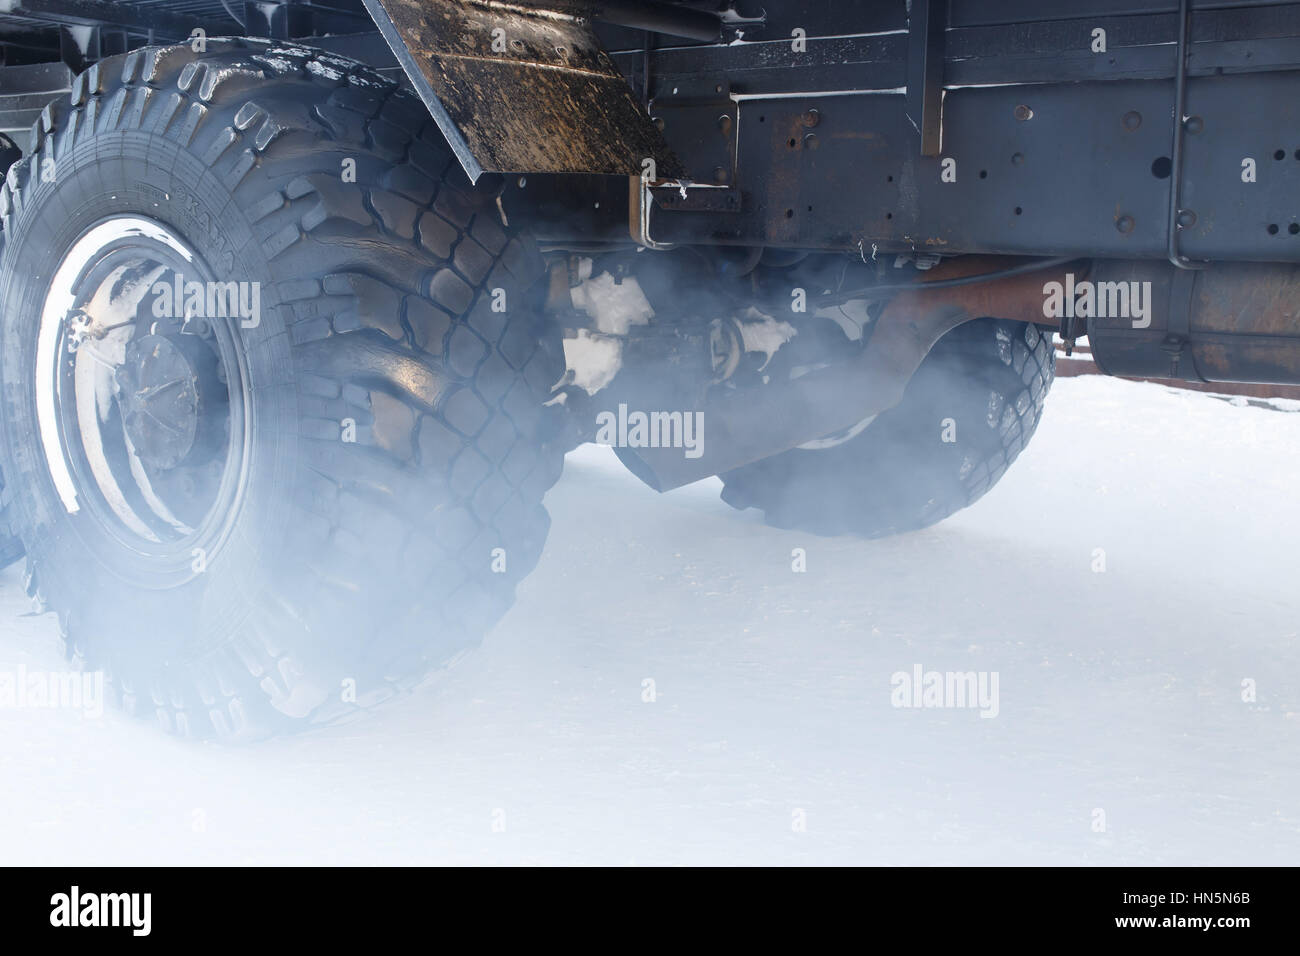 Photo of the exhaust gases of the truck. Fog and mist smoke air from the pipe car. - Stock Image